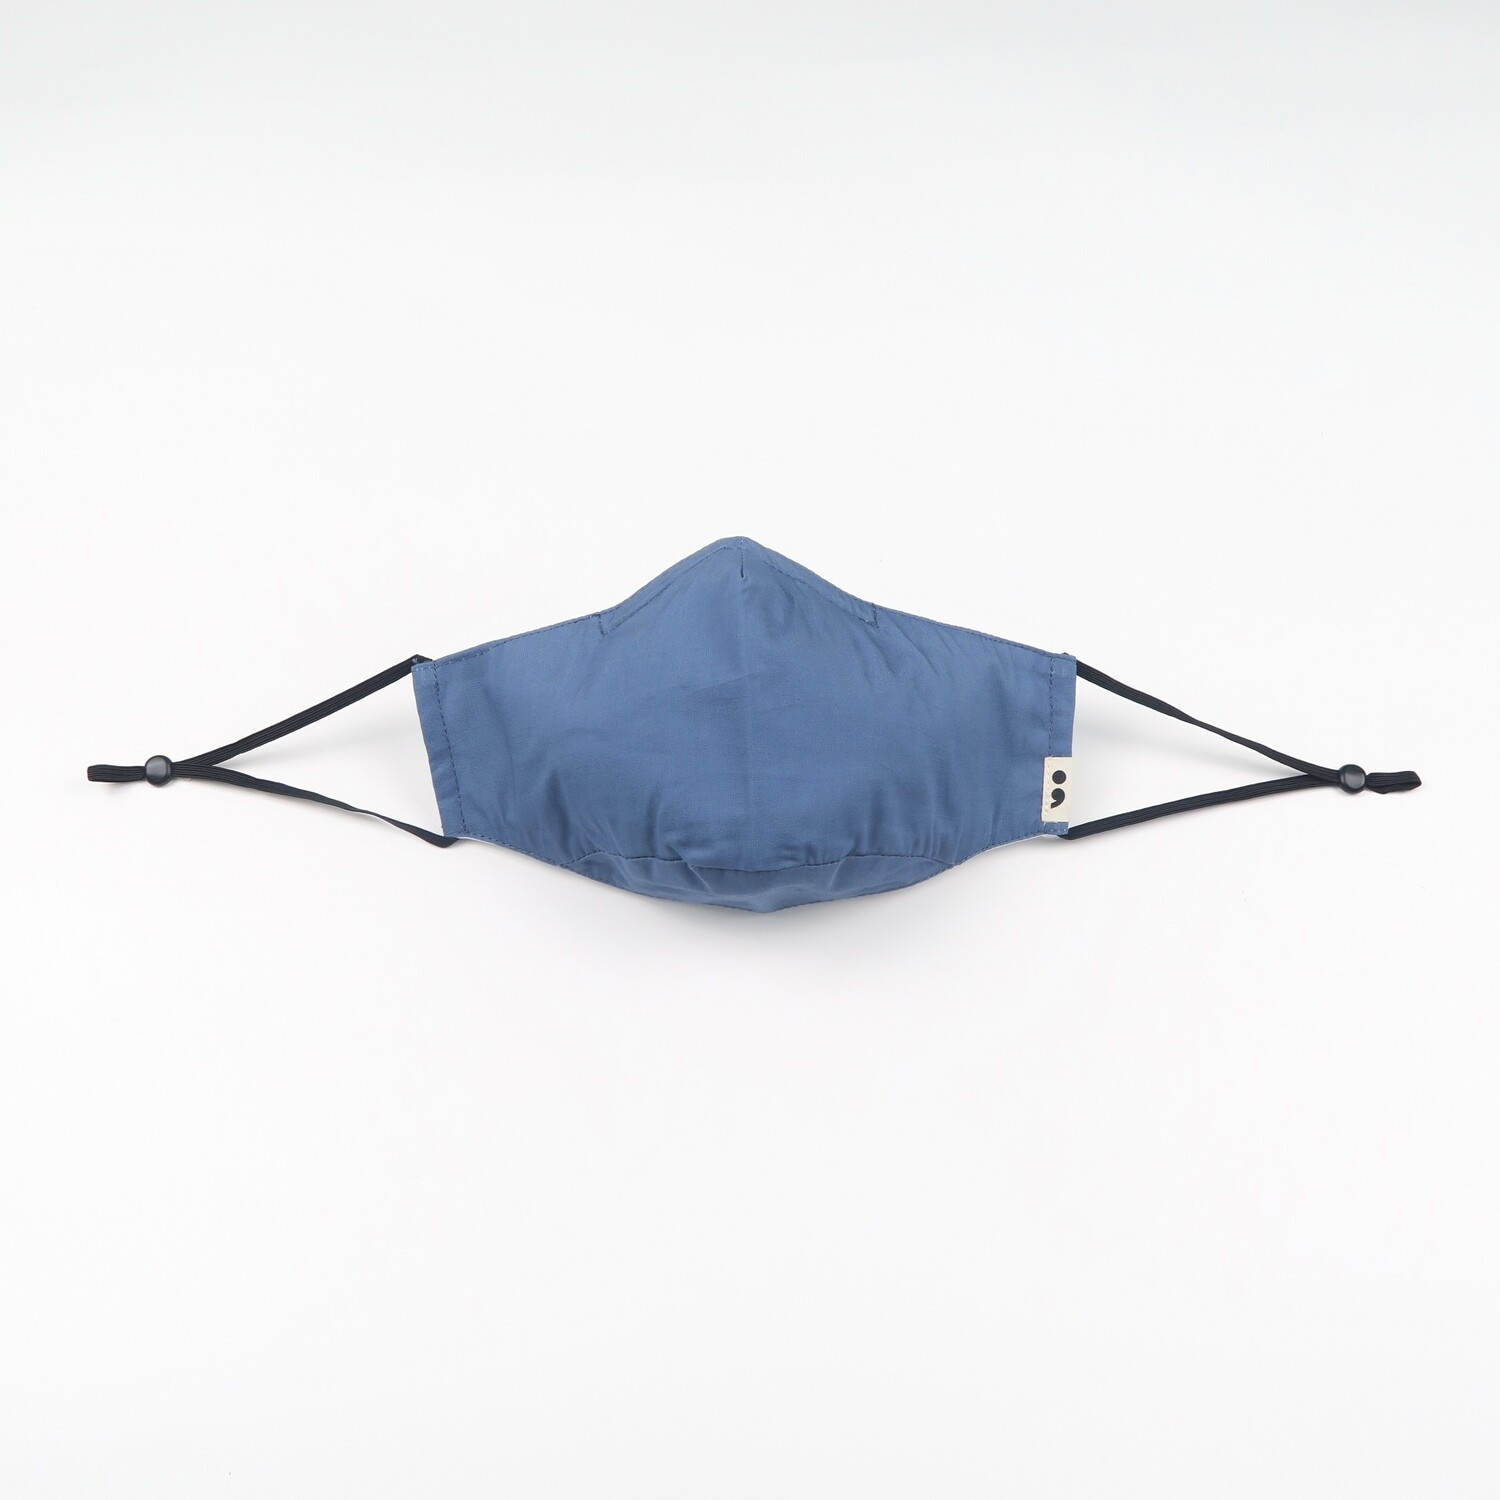 C-mask: Reusable & Washable Face Mask in Steel Blue